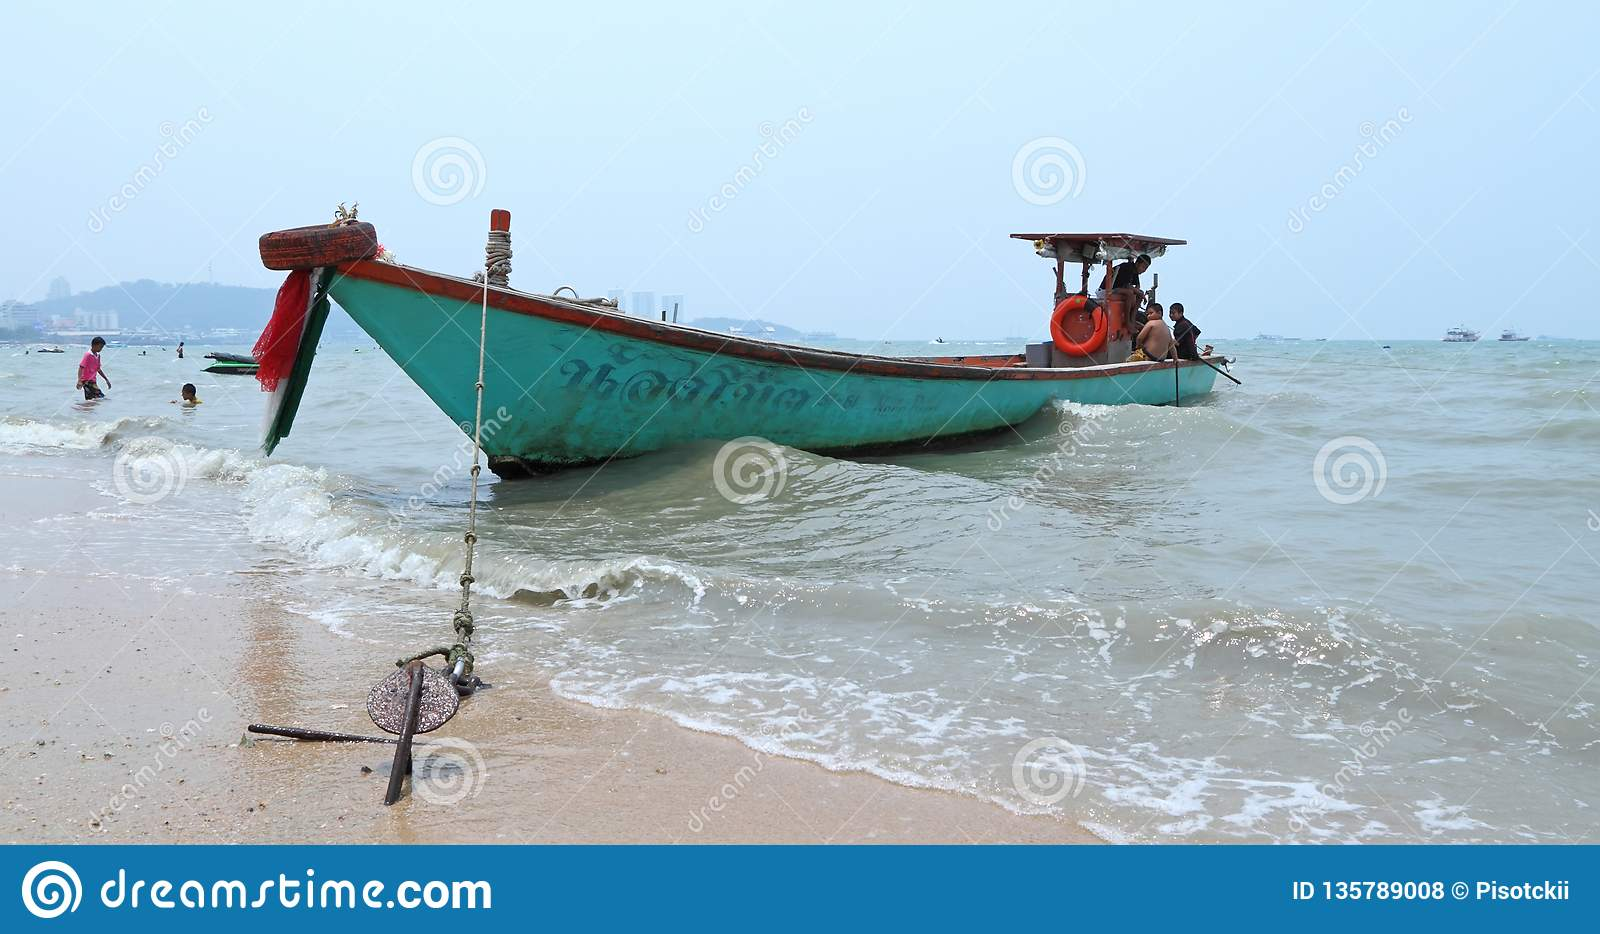 Motor boat near the shore among the waves on the coast of Pattaya in the Kingdom of Thailand